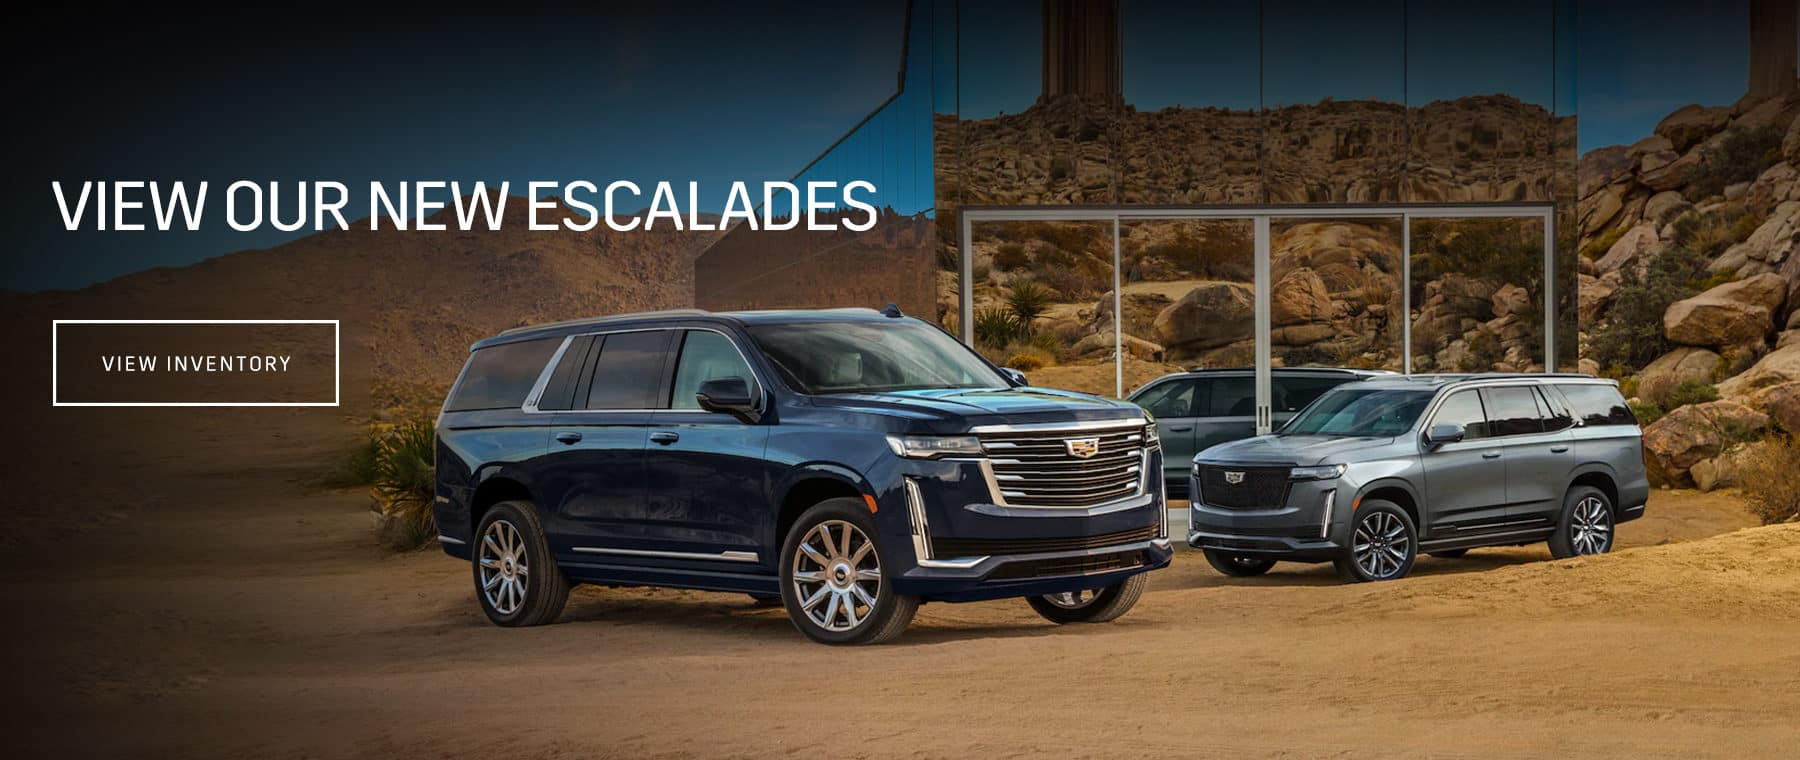 View our new Escalades